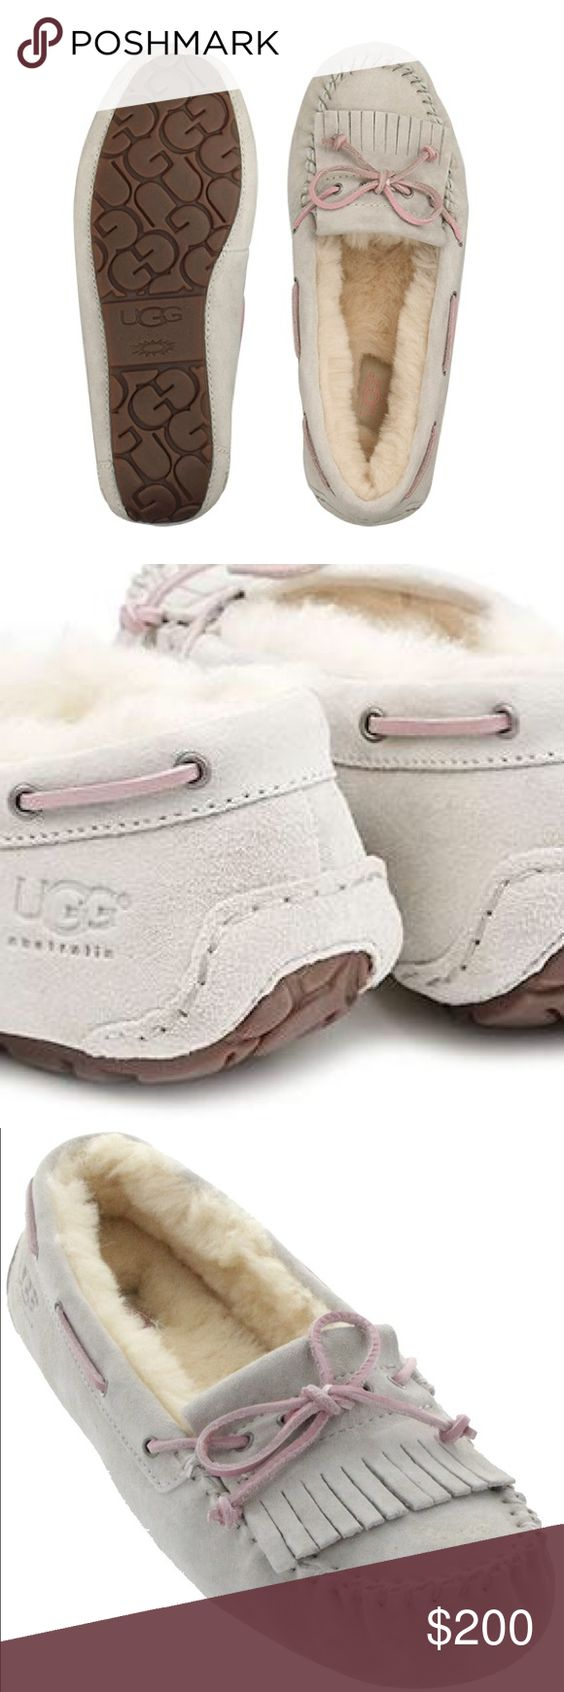 UGG Mandie moccasins Brand new in box.  Size : 6.   Authenticity guarnteed. Color ; cloud UGG Shoes Moccasins